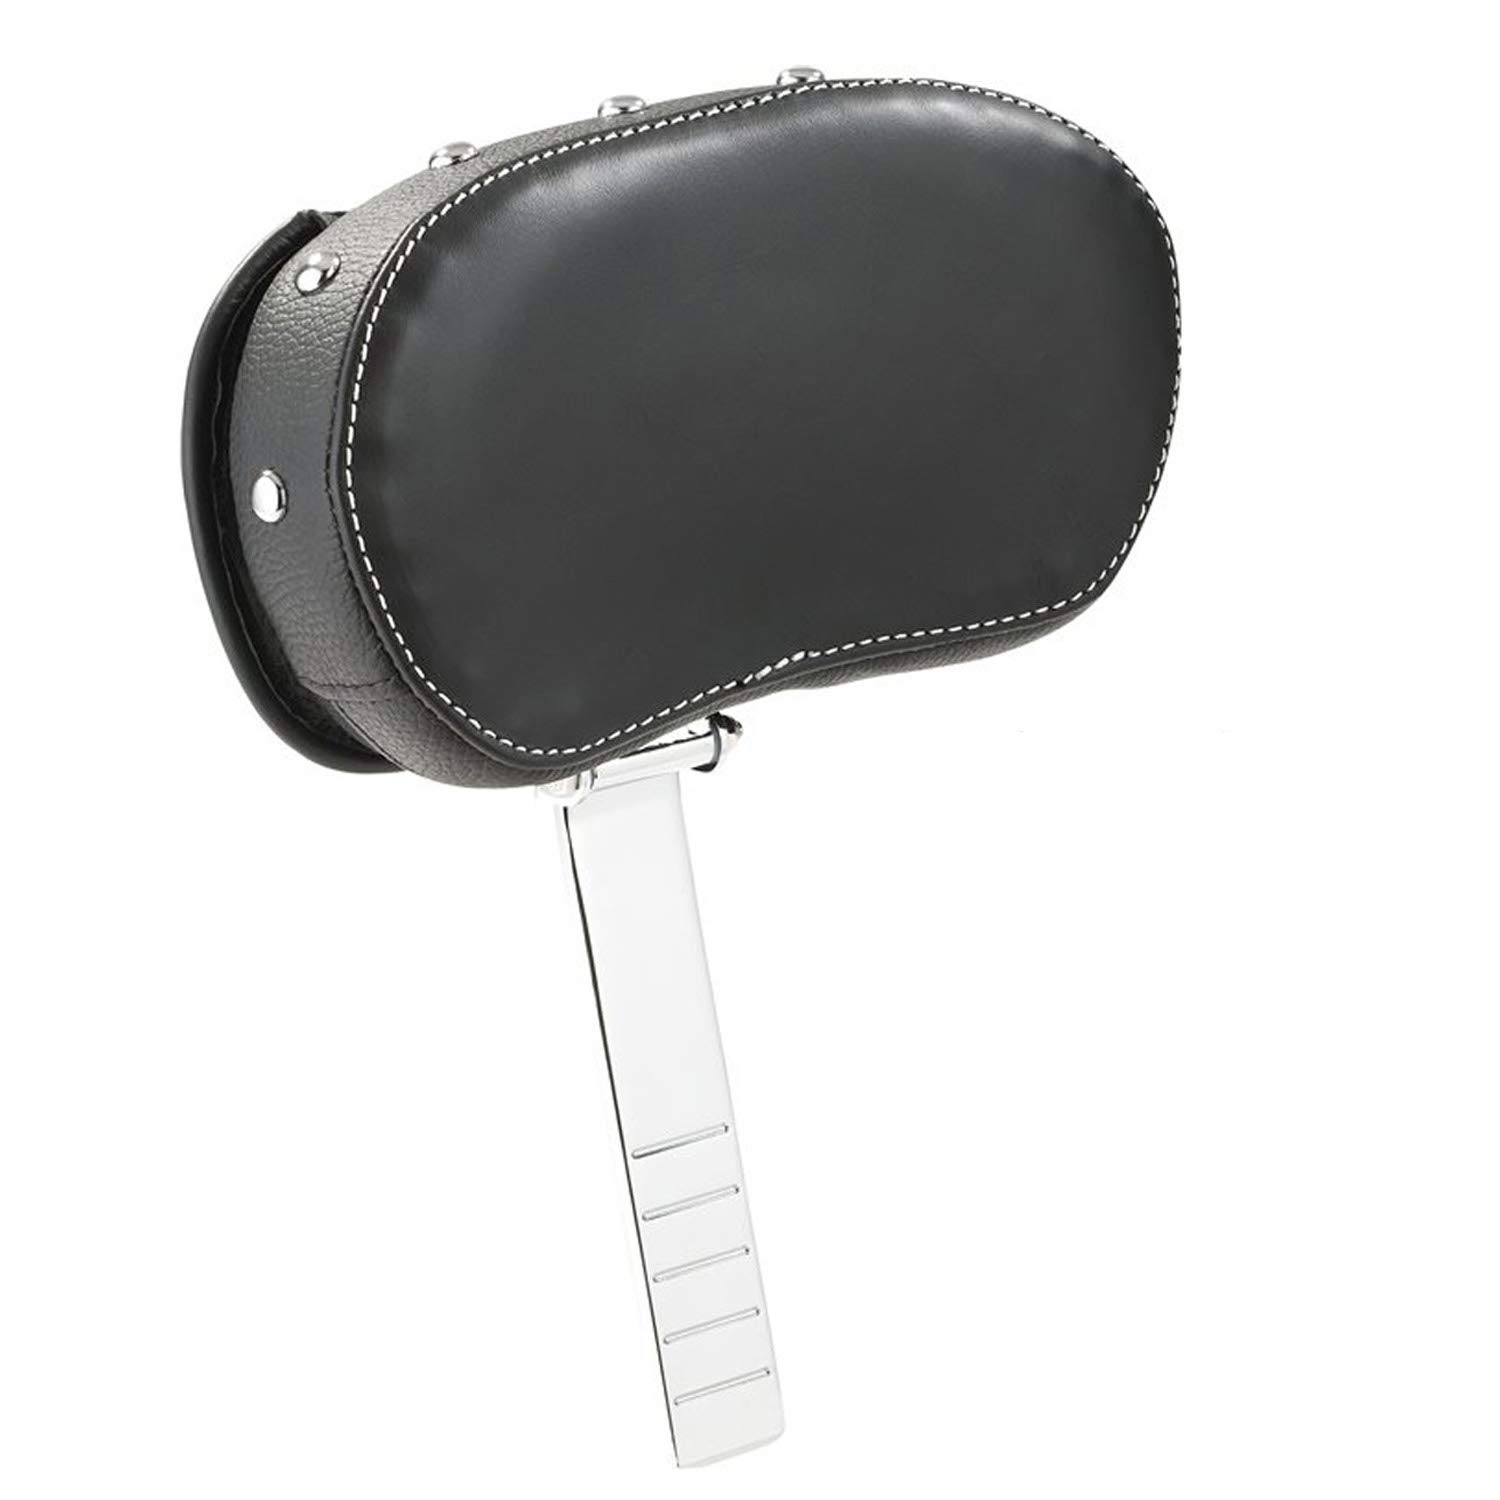 Black w//Studs 2879542-02 Indian Motorcycle Genuine Leather Rider Backrest Pad